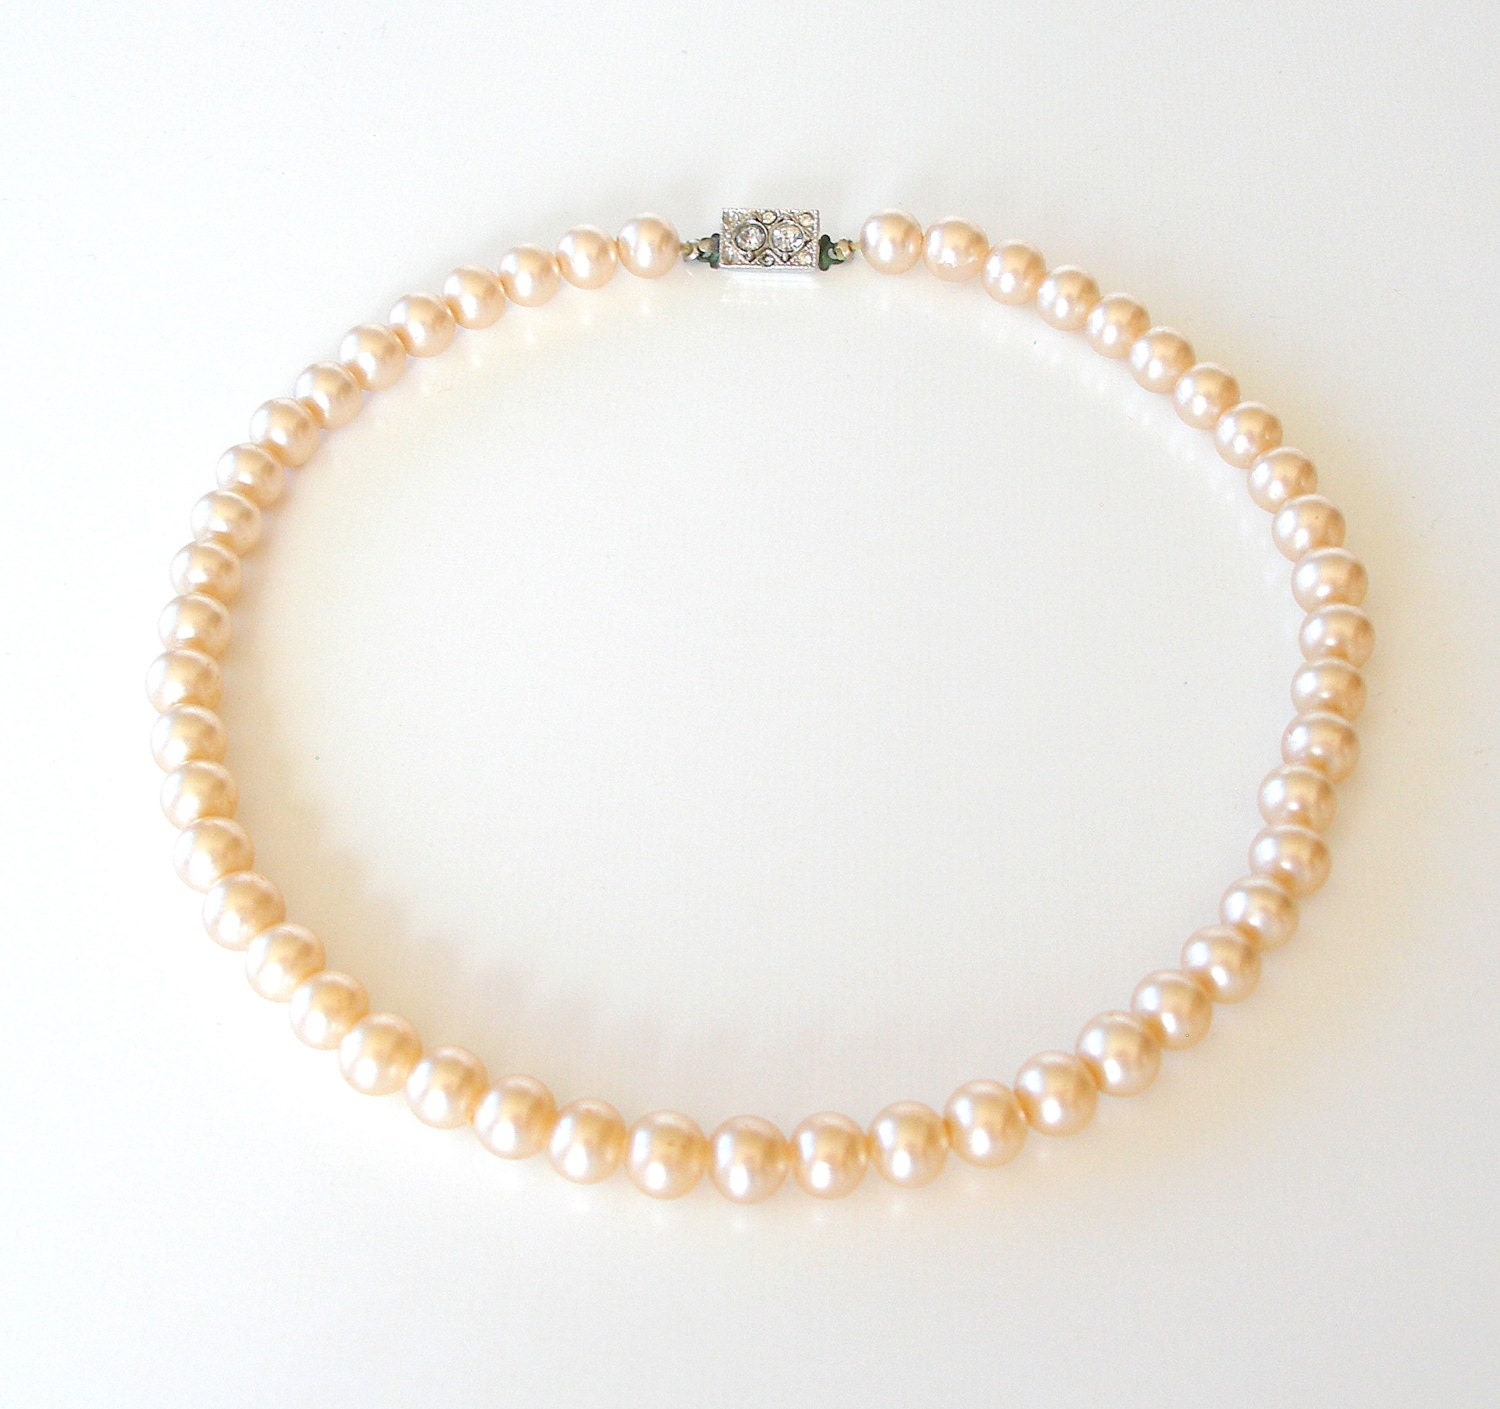 Vintage Faux Pearl Necklace Choker 1950s Champagne Pink